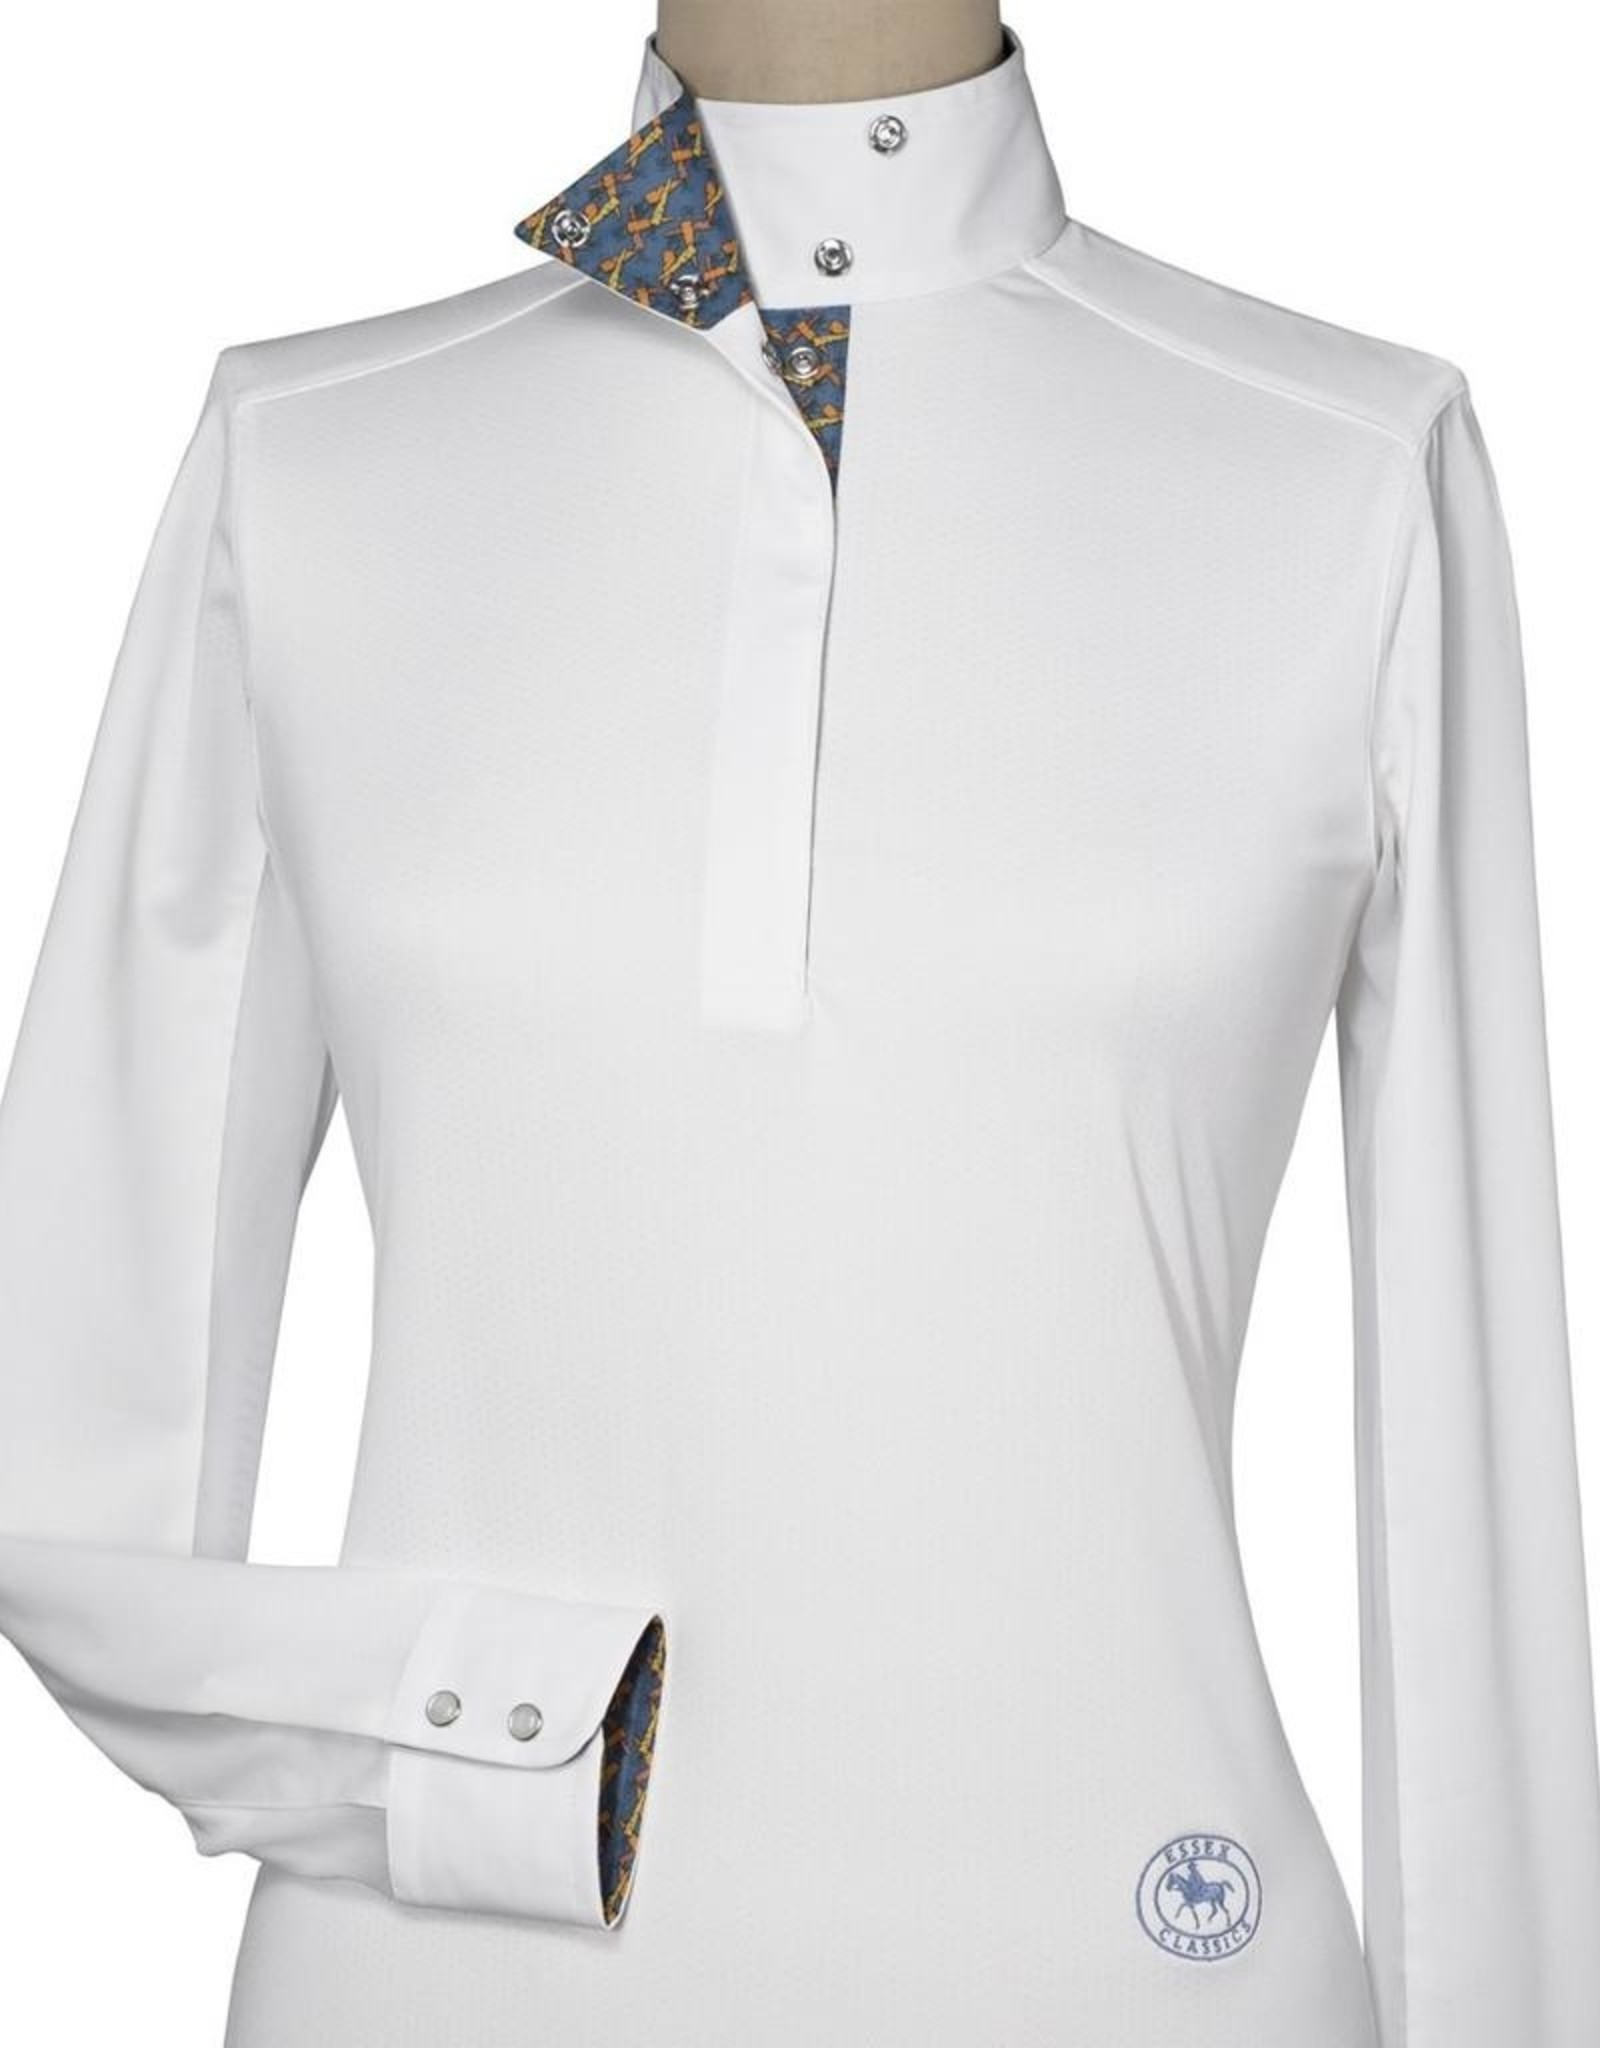 Essex Ladies' Talent Yarn Wrap Collar Show Shirt With Carrots